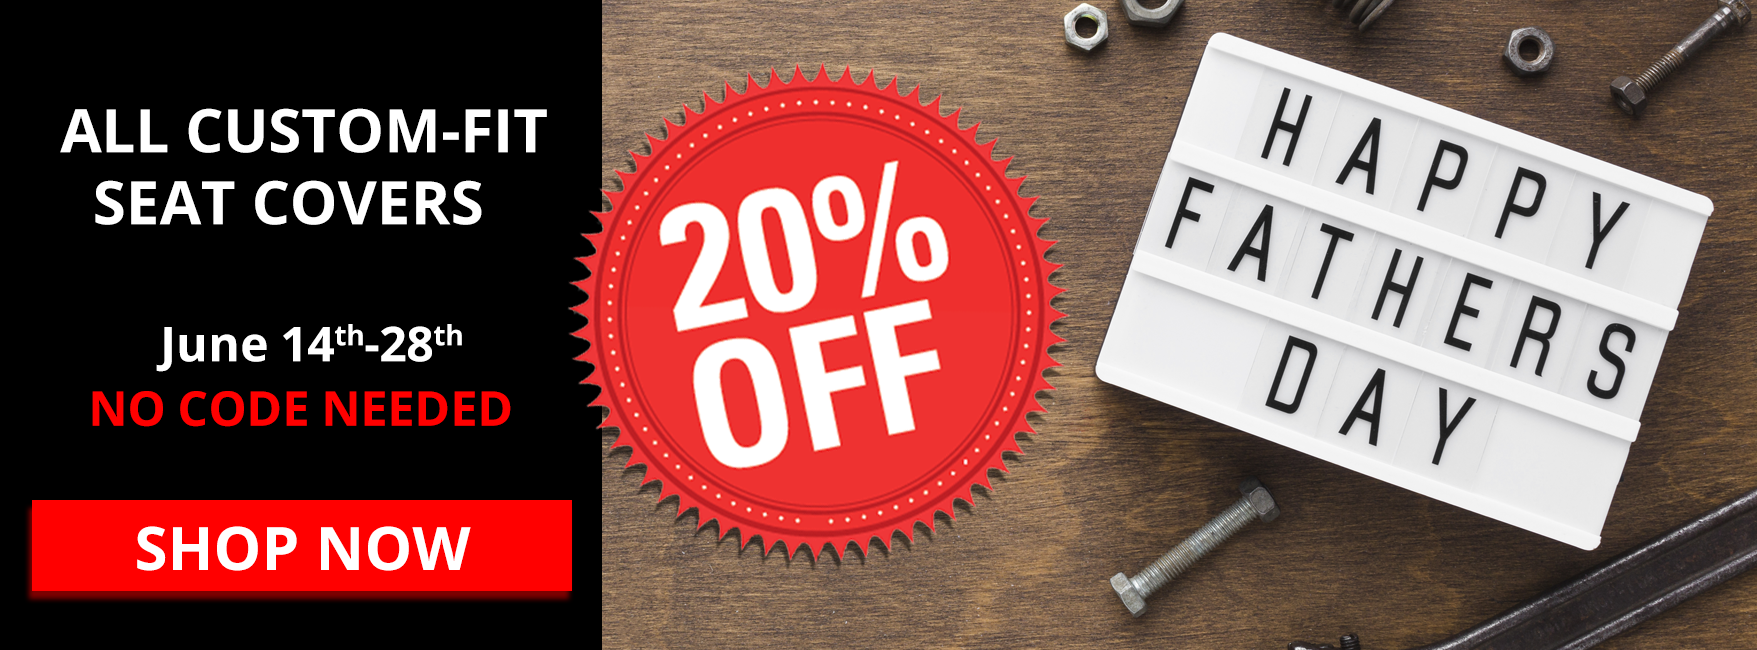 Father's Day SALE! 20% OFF All Custom-Fit Seat Covers. June 14th-28th. NO CODE NEEDED.